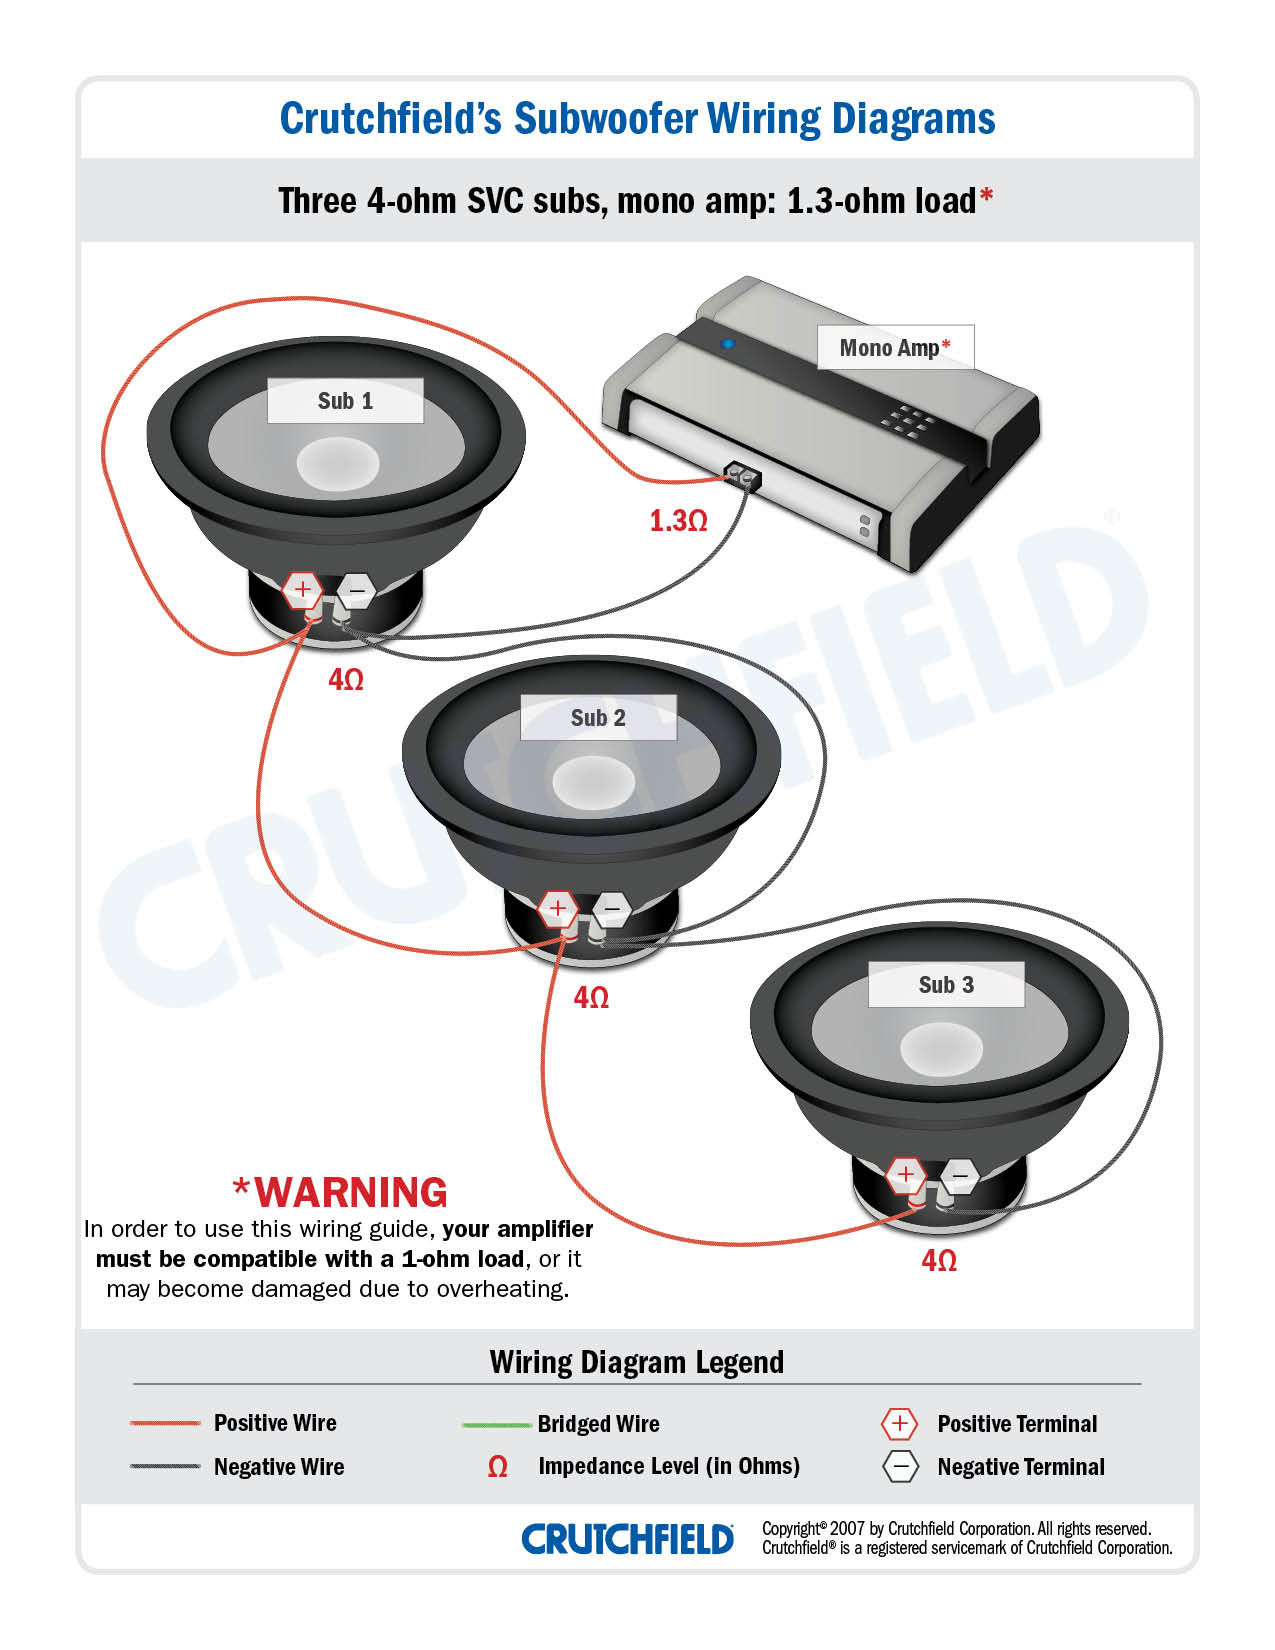 3 SVC 4 ohm mono low imp quick guide to matching subs & amps how to put together the best boston acoustics subsat 6 wiring diagram at alyssarenee.co